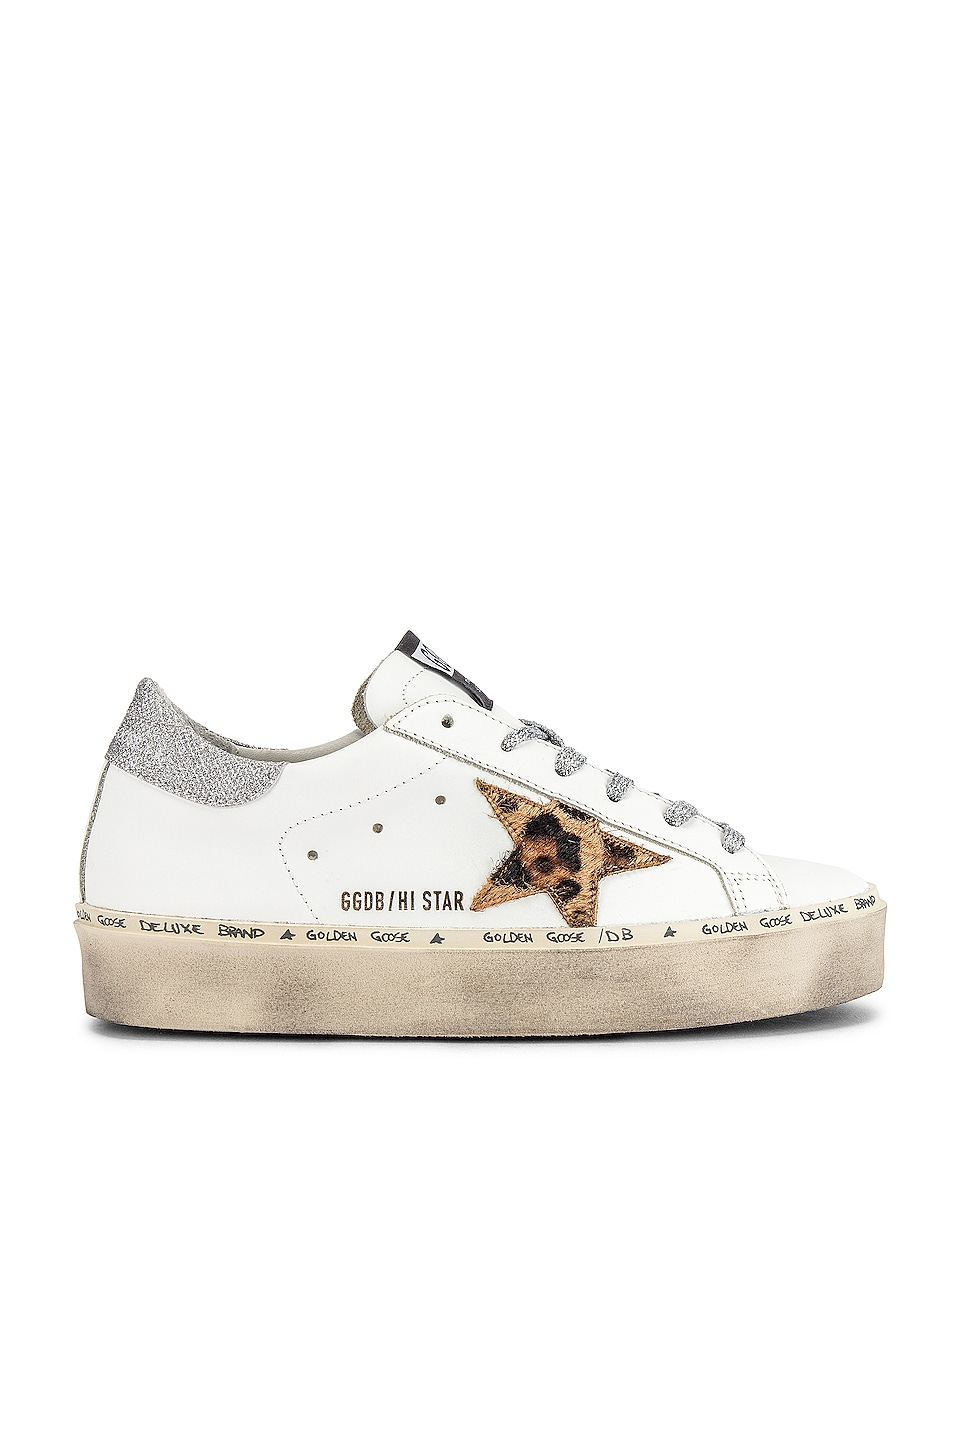 Golden Goose Hi Star Sneaker in White Leather, Leopard & Lurex Lace